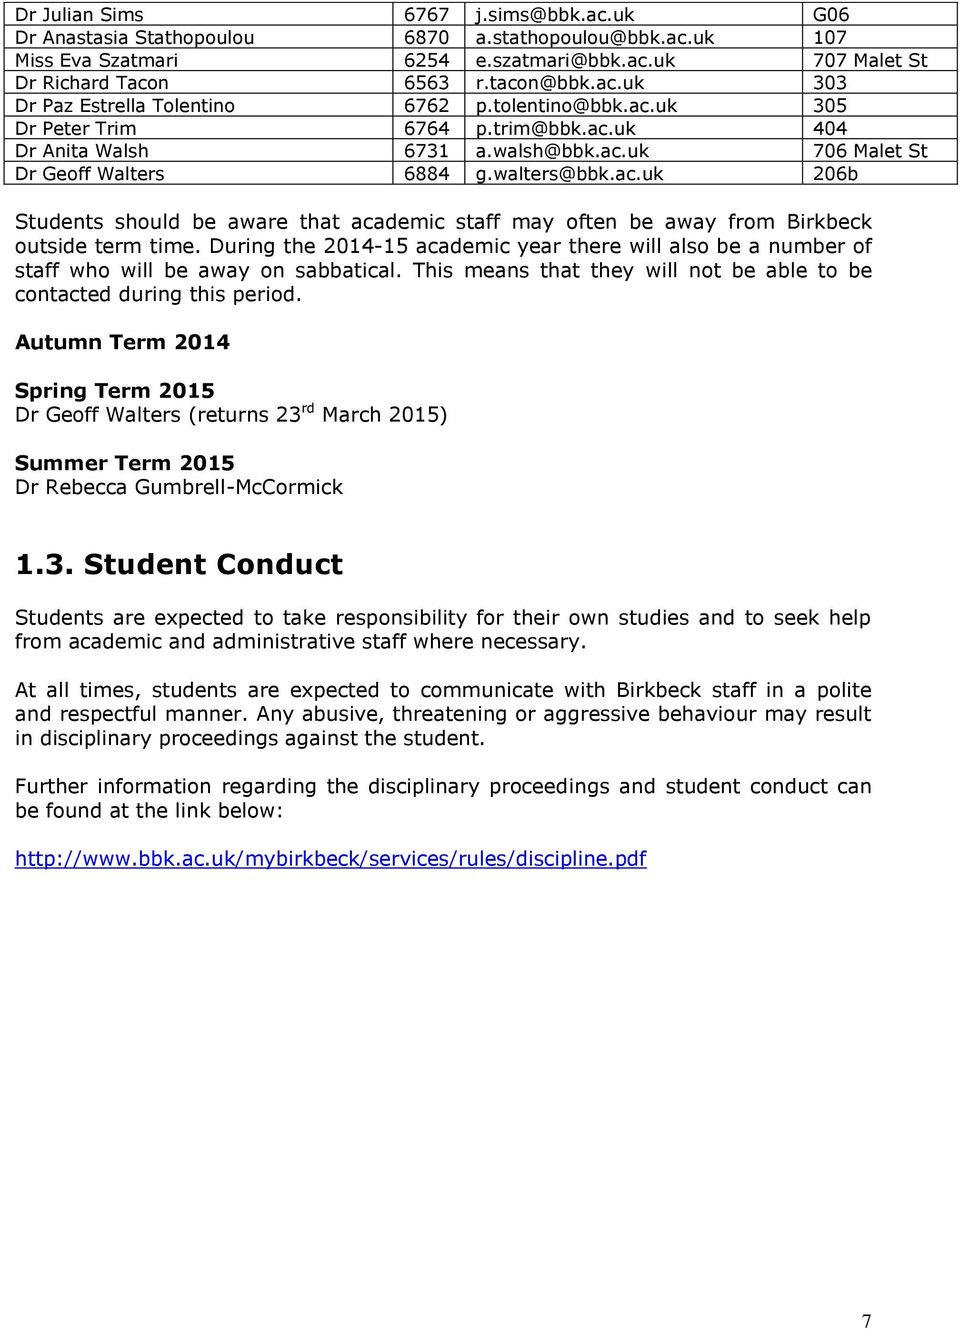 During the 2014-15 academic year there will also be a number of staff who will be away on sabbatical. This means that they will not be able to be contacted during this period.